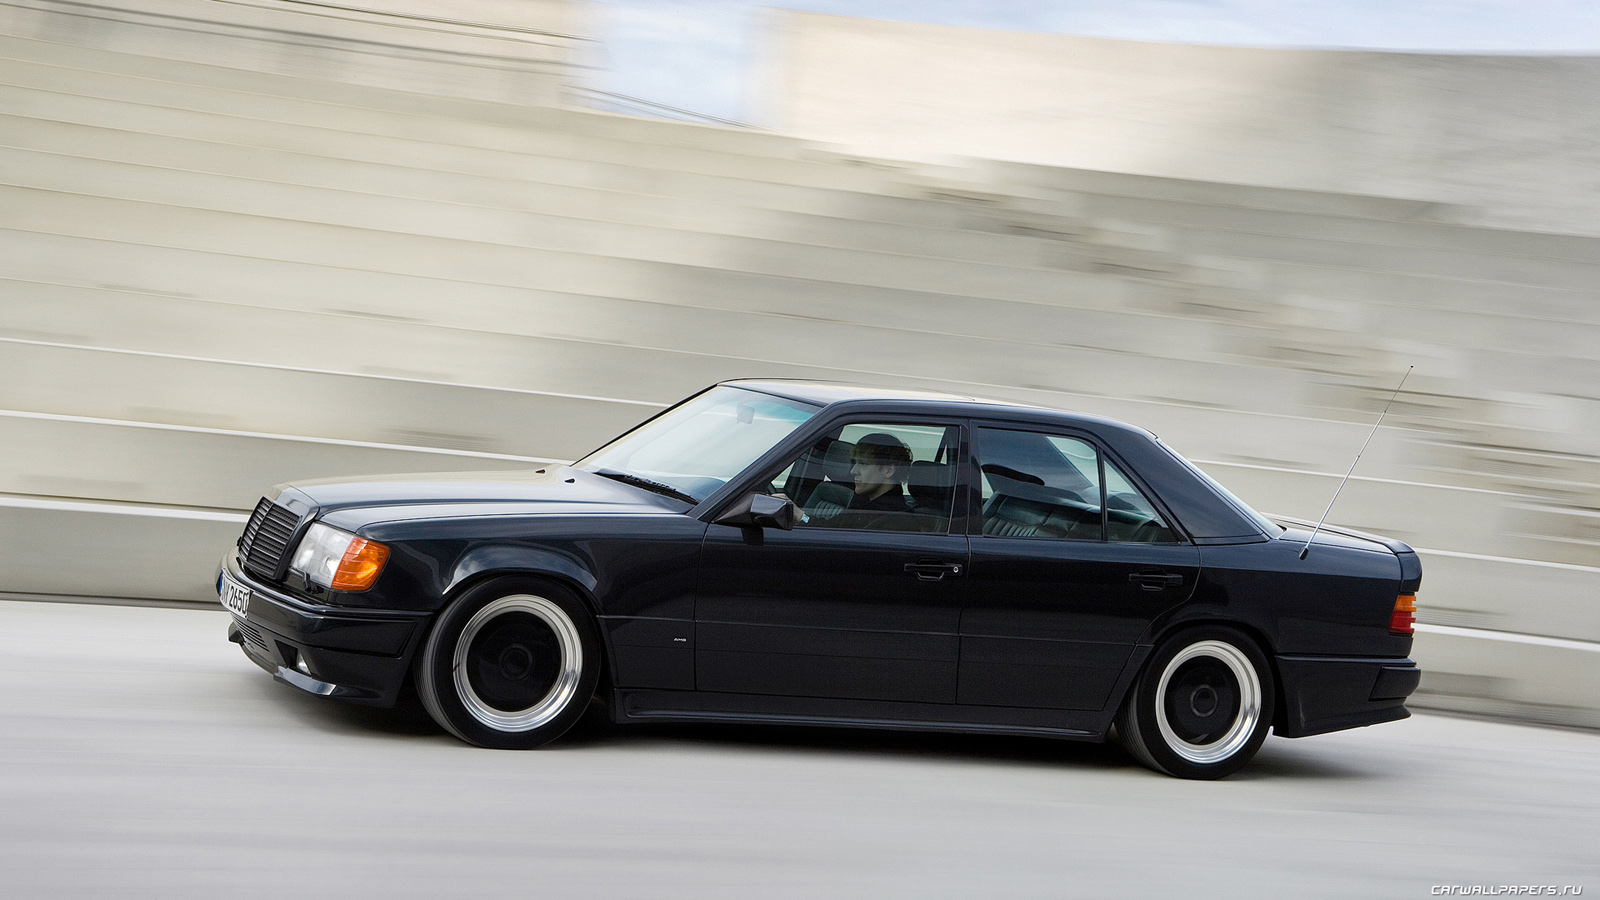 Mercedes benz e 60 amg technical details history photos for Mercedes benz amg accessories parts